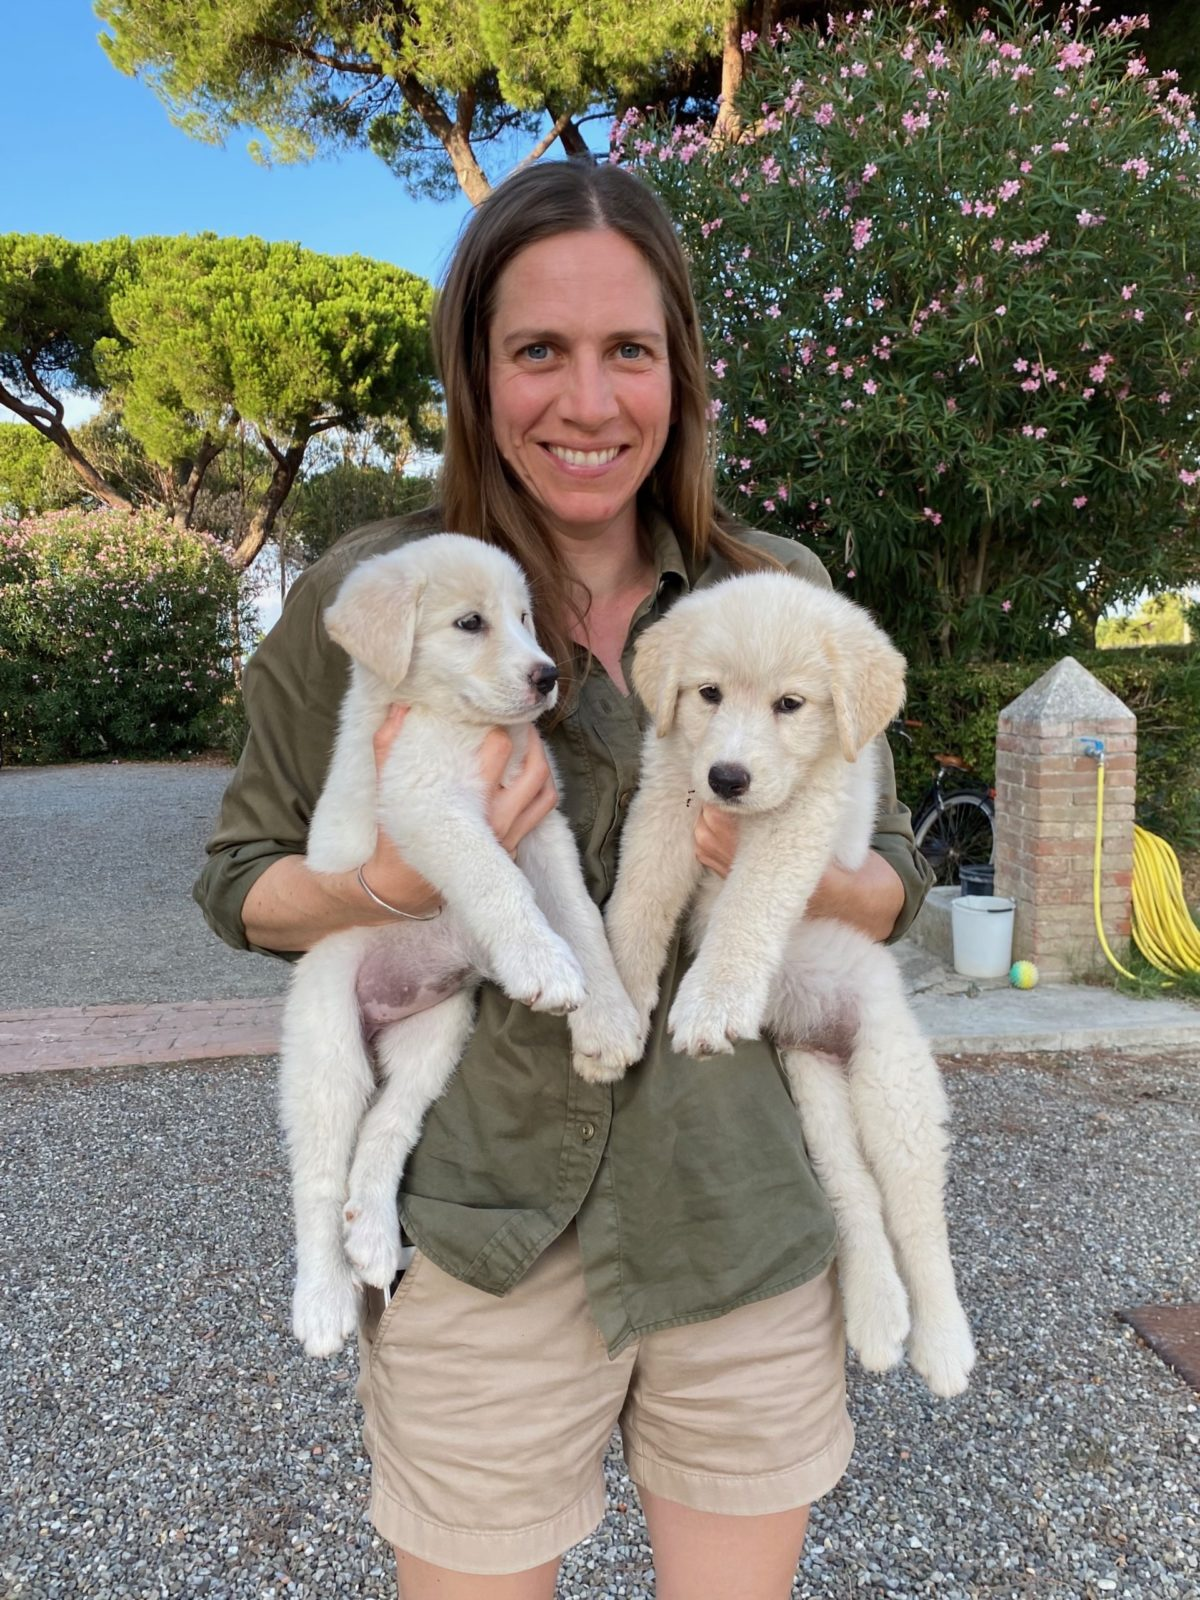 A woman holding two puppies